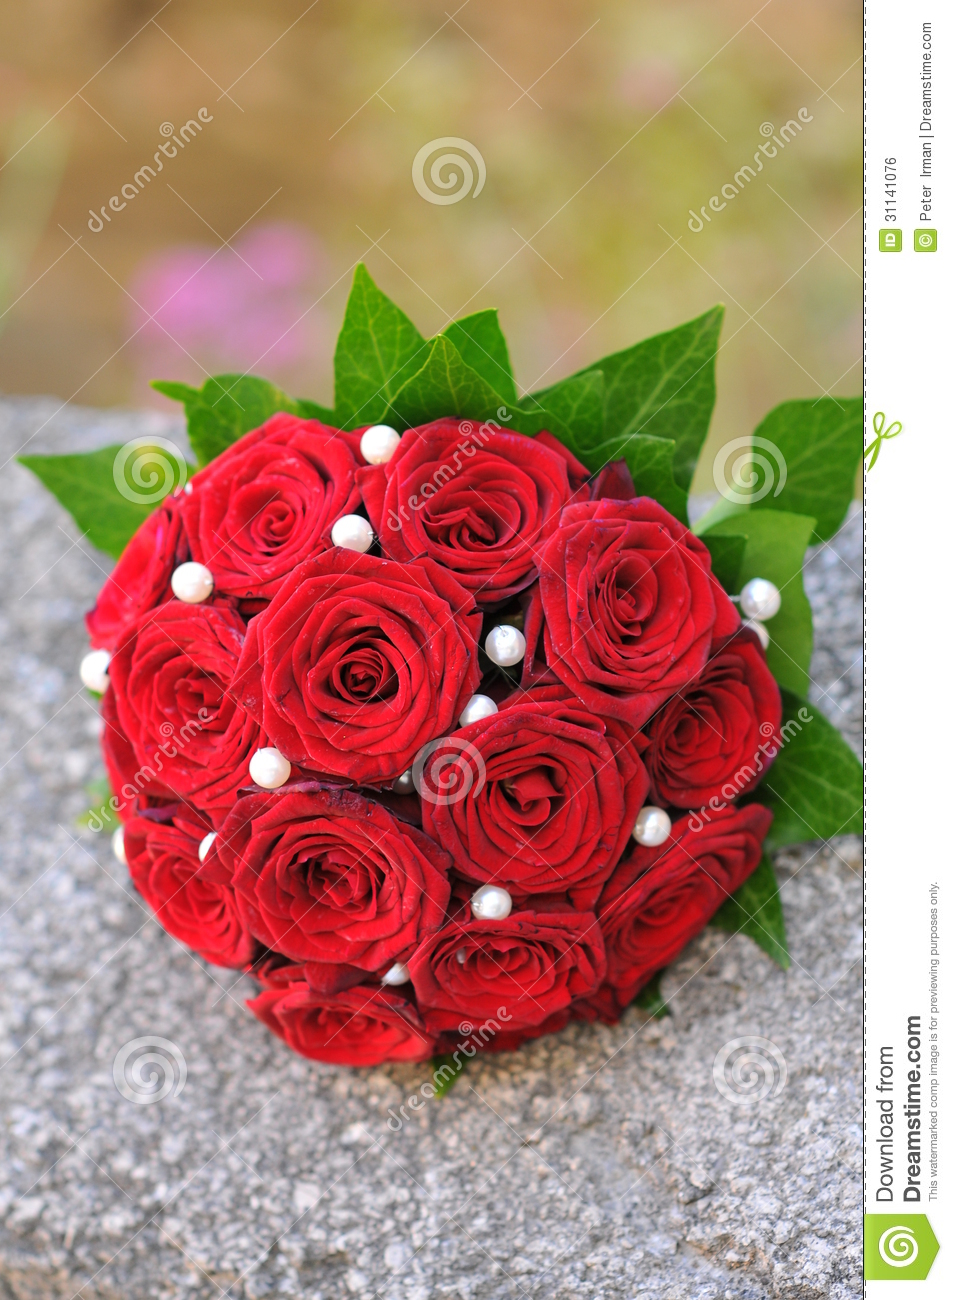 Wedding Bouquet With Red Roses Stock Photo Image Of Married Decor